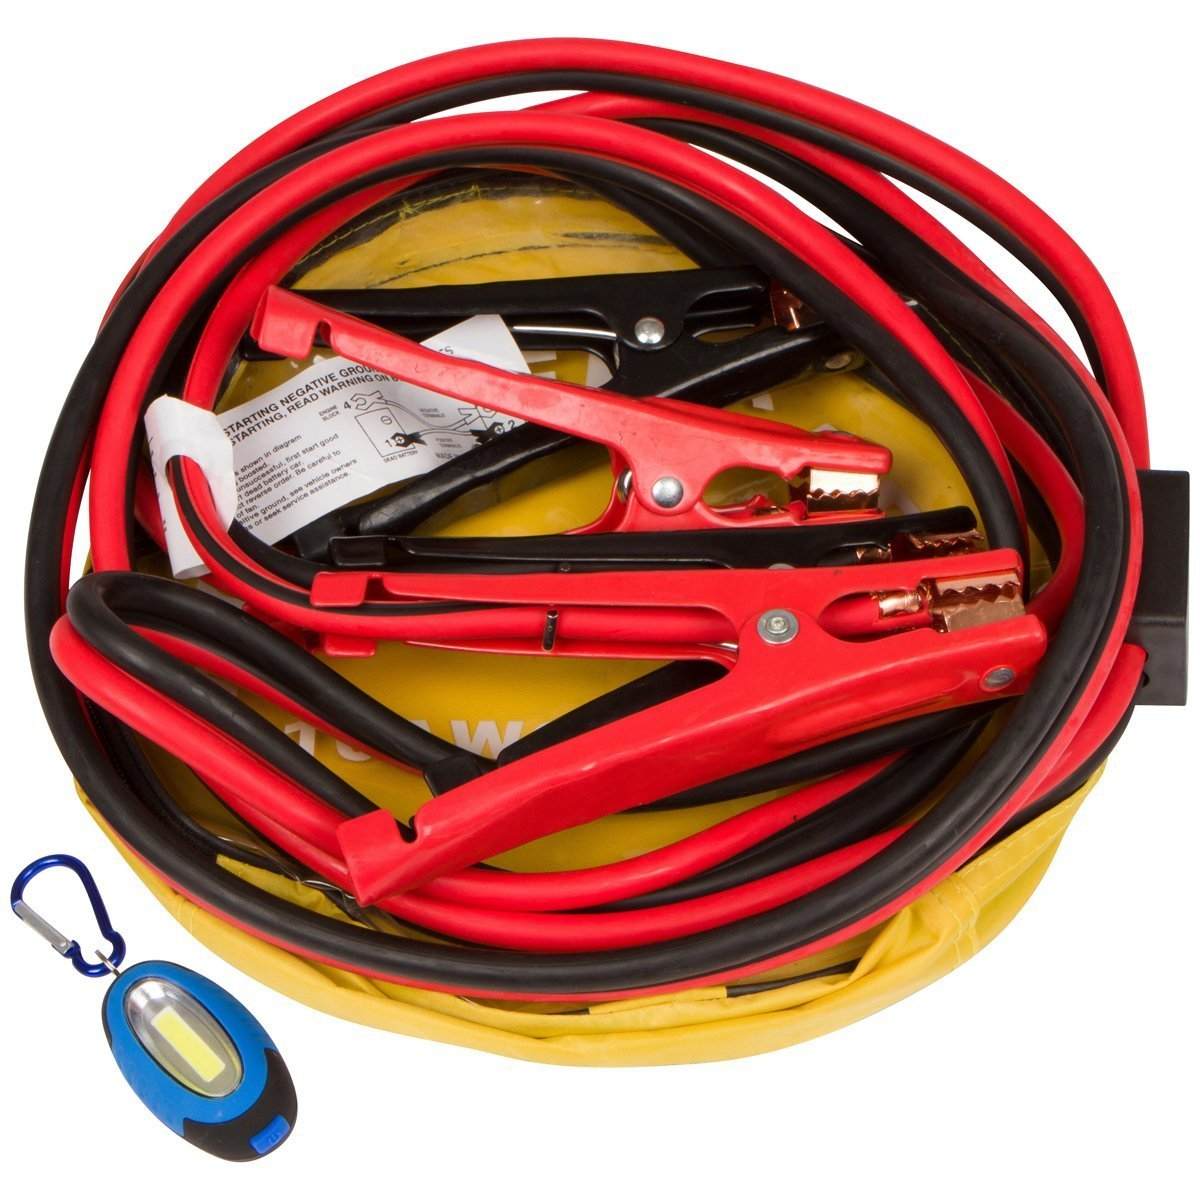 Jumper Cables With Key Chain Safety Flashlight Booster Cables Are 12 ...